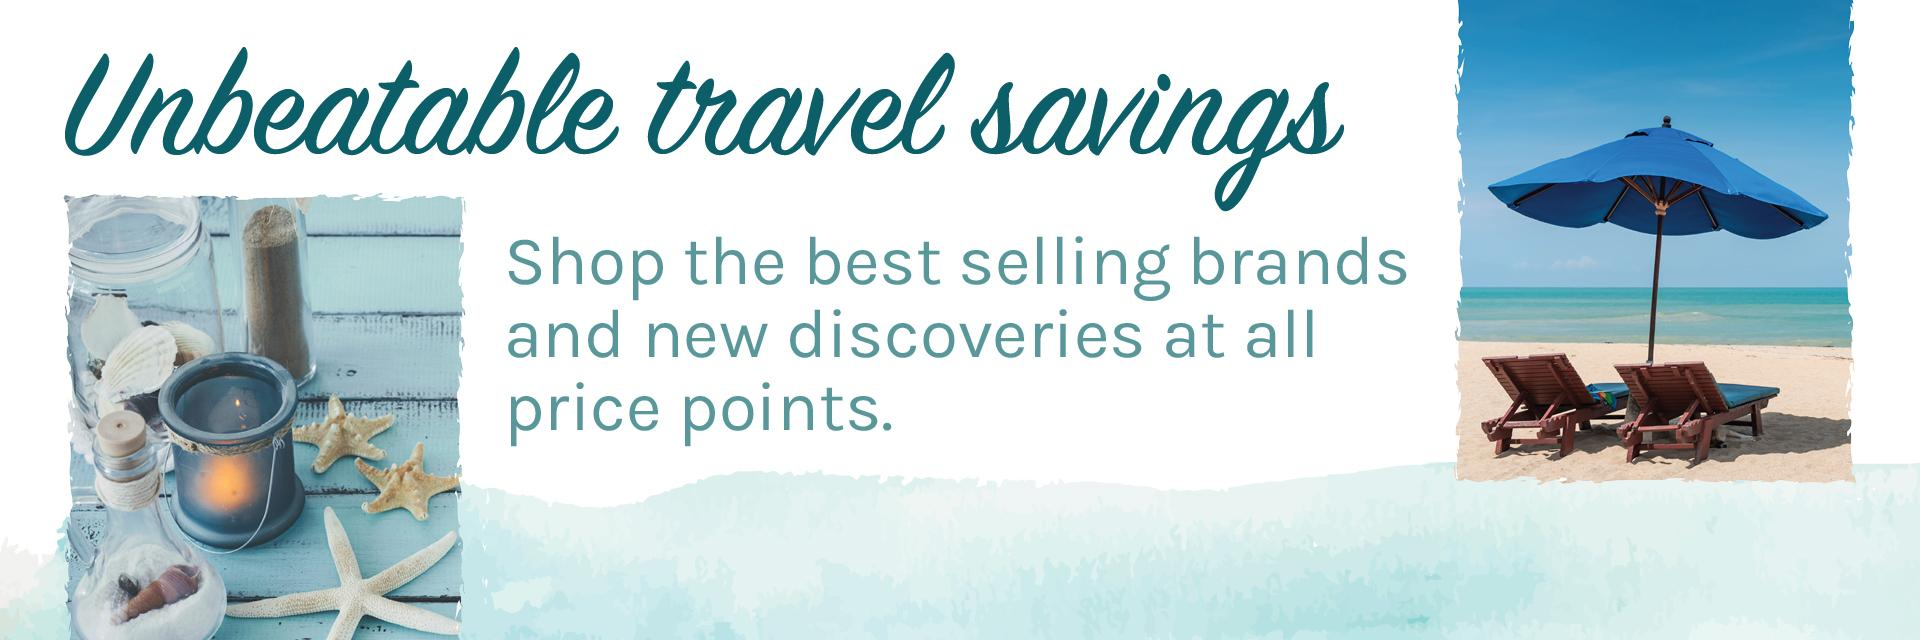 unbeatable travel savings shop the best selling brands and new discoveries at all price points